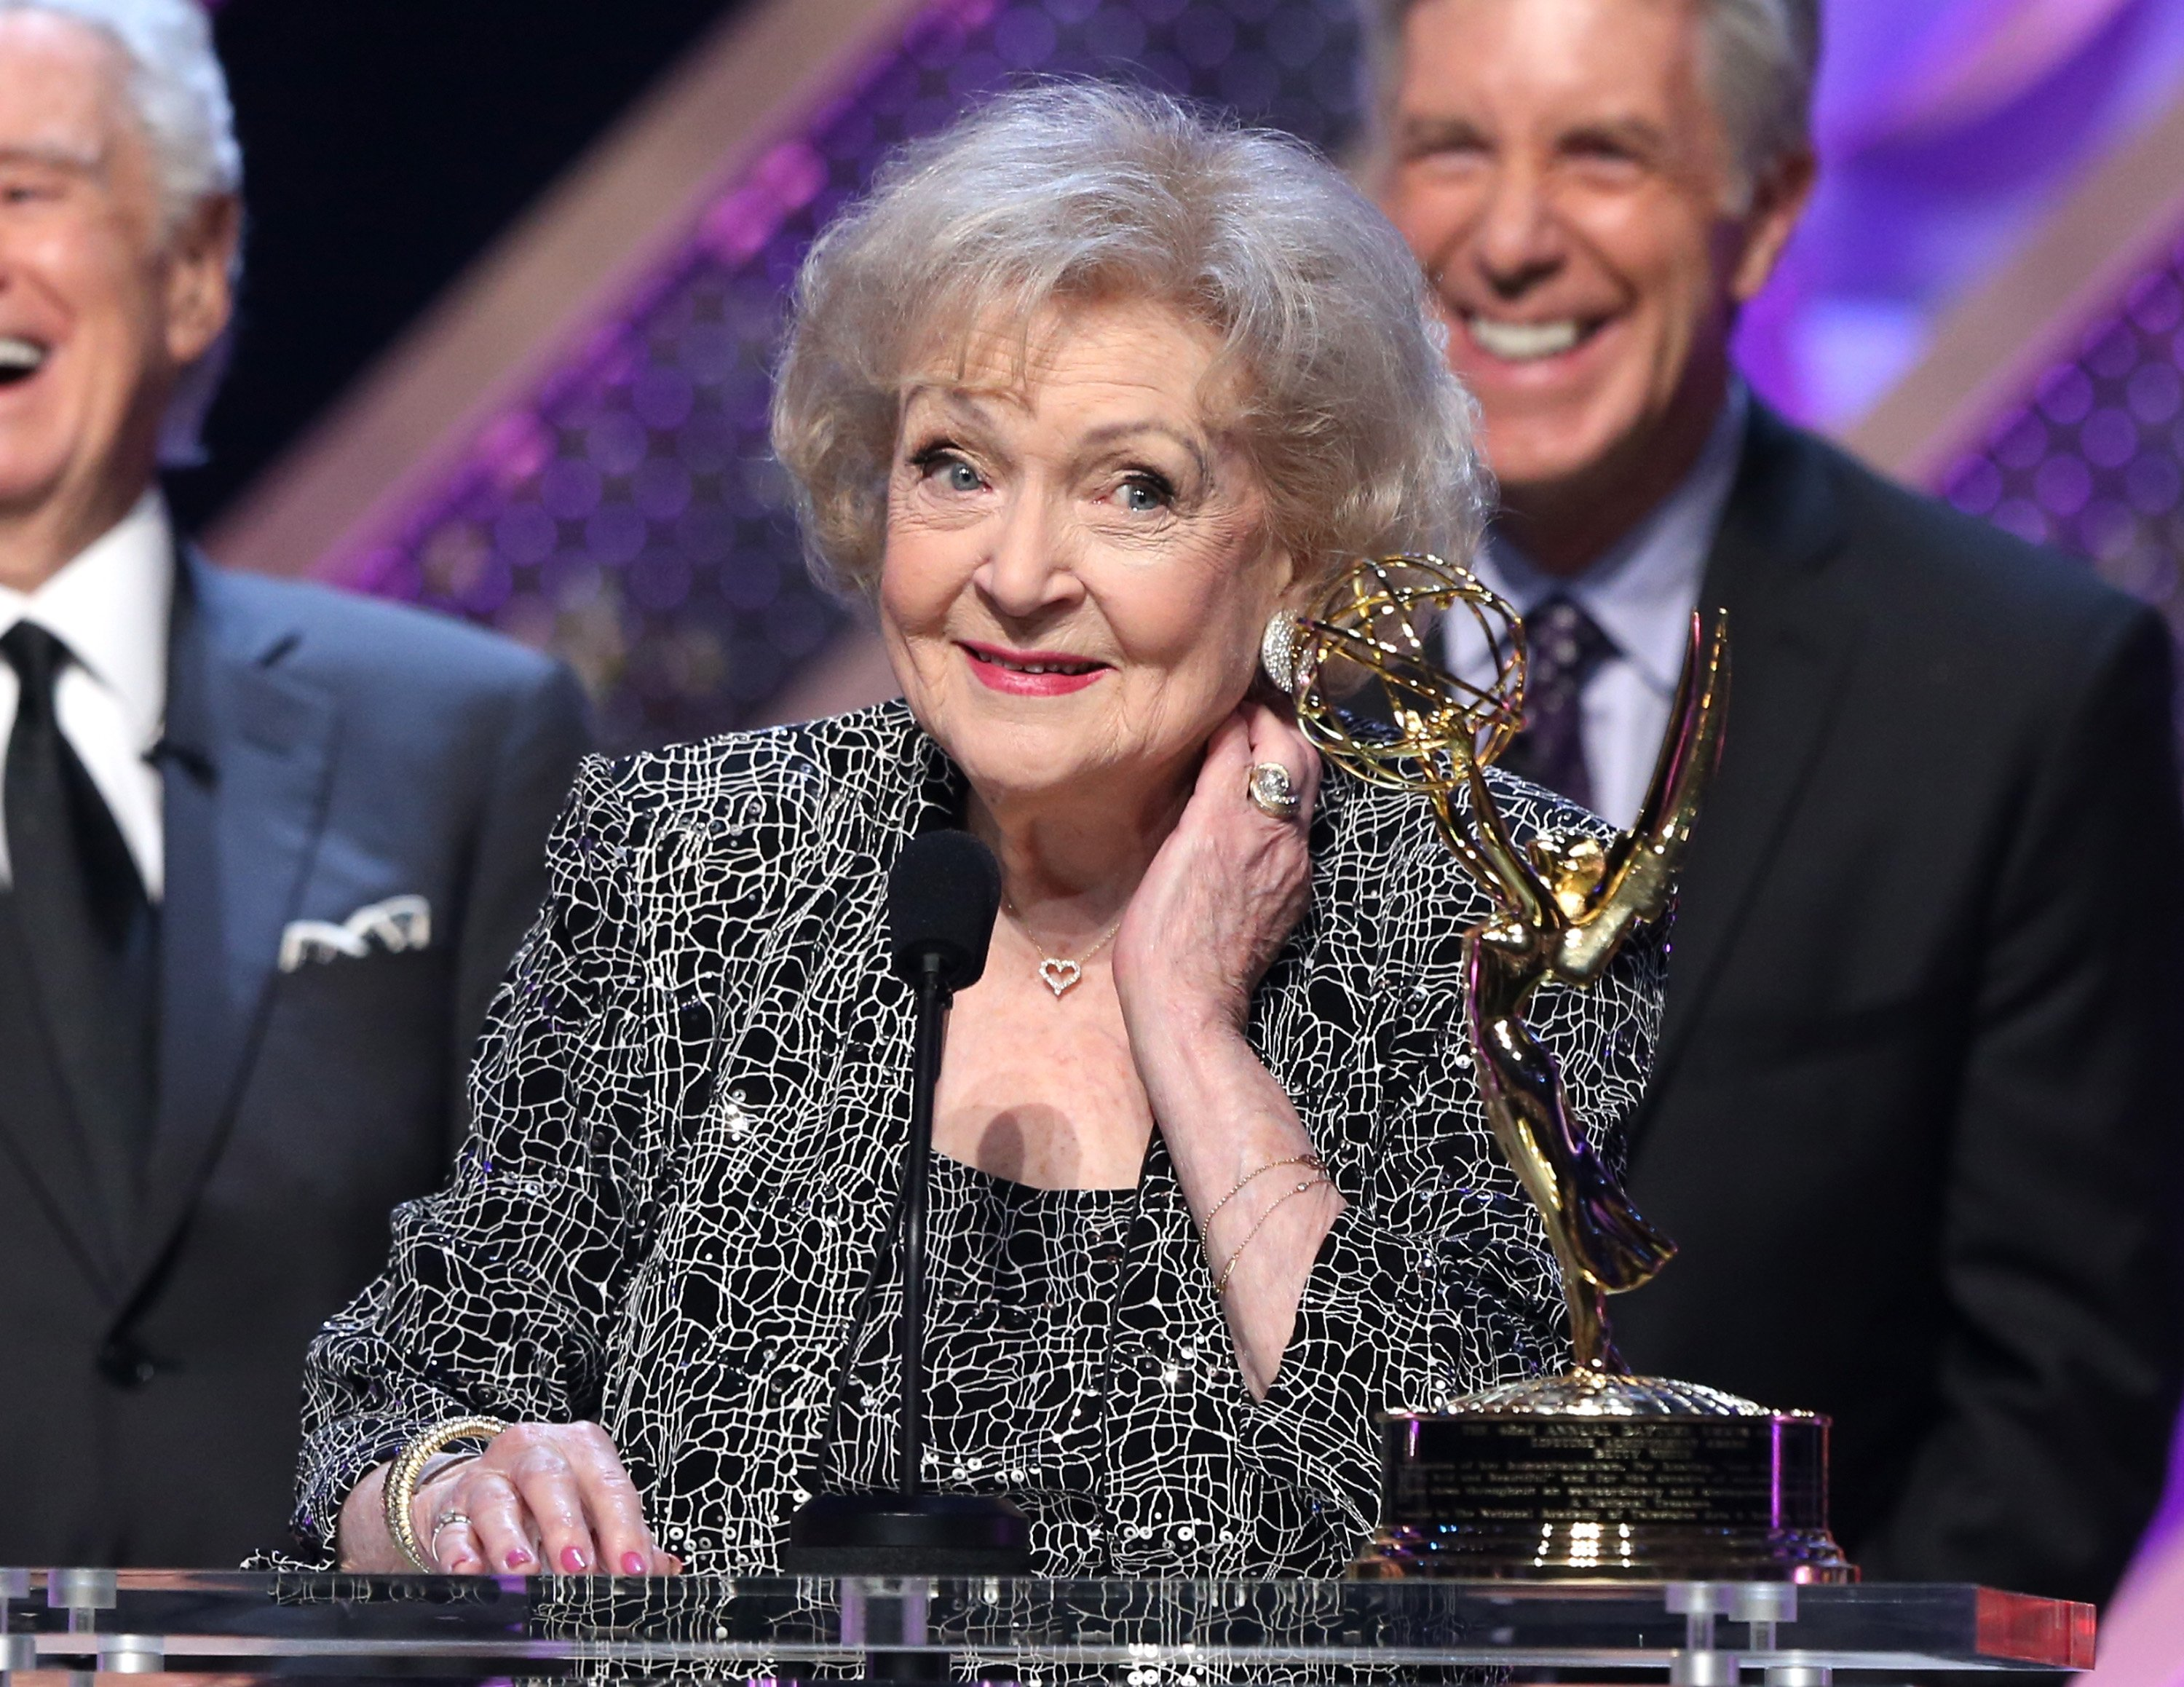 Betty White at the 42nd Annual Daytime Emmy Awards on April 26, 2015. | Photo: Getty Images